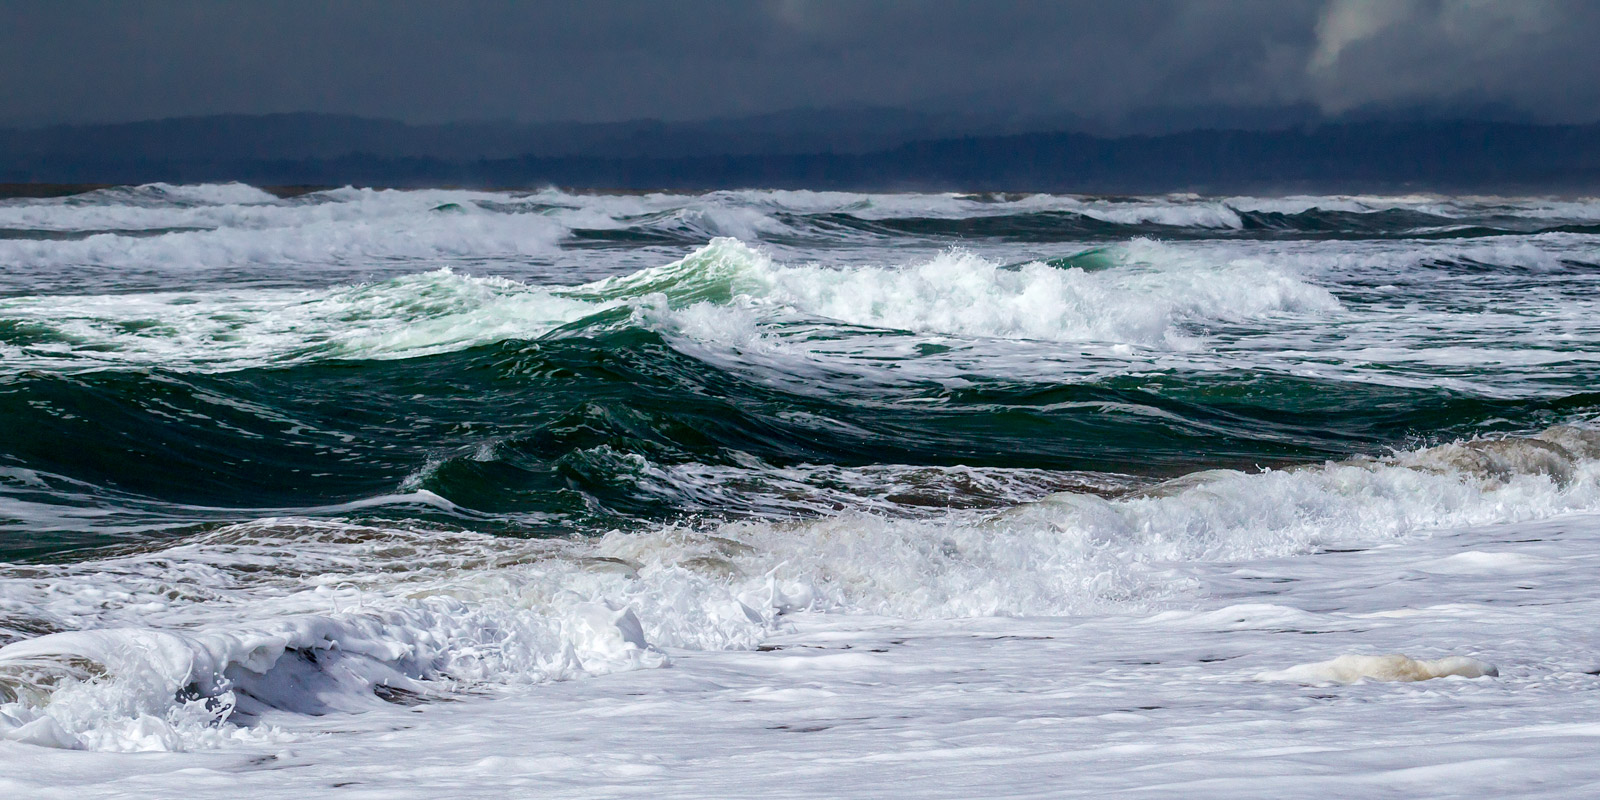 California, Coast, Storm, Waves, Monterey Bay, limited edition, photograph, fine art, landscape,, photo